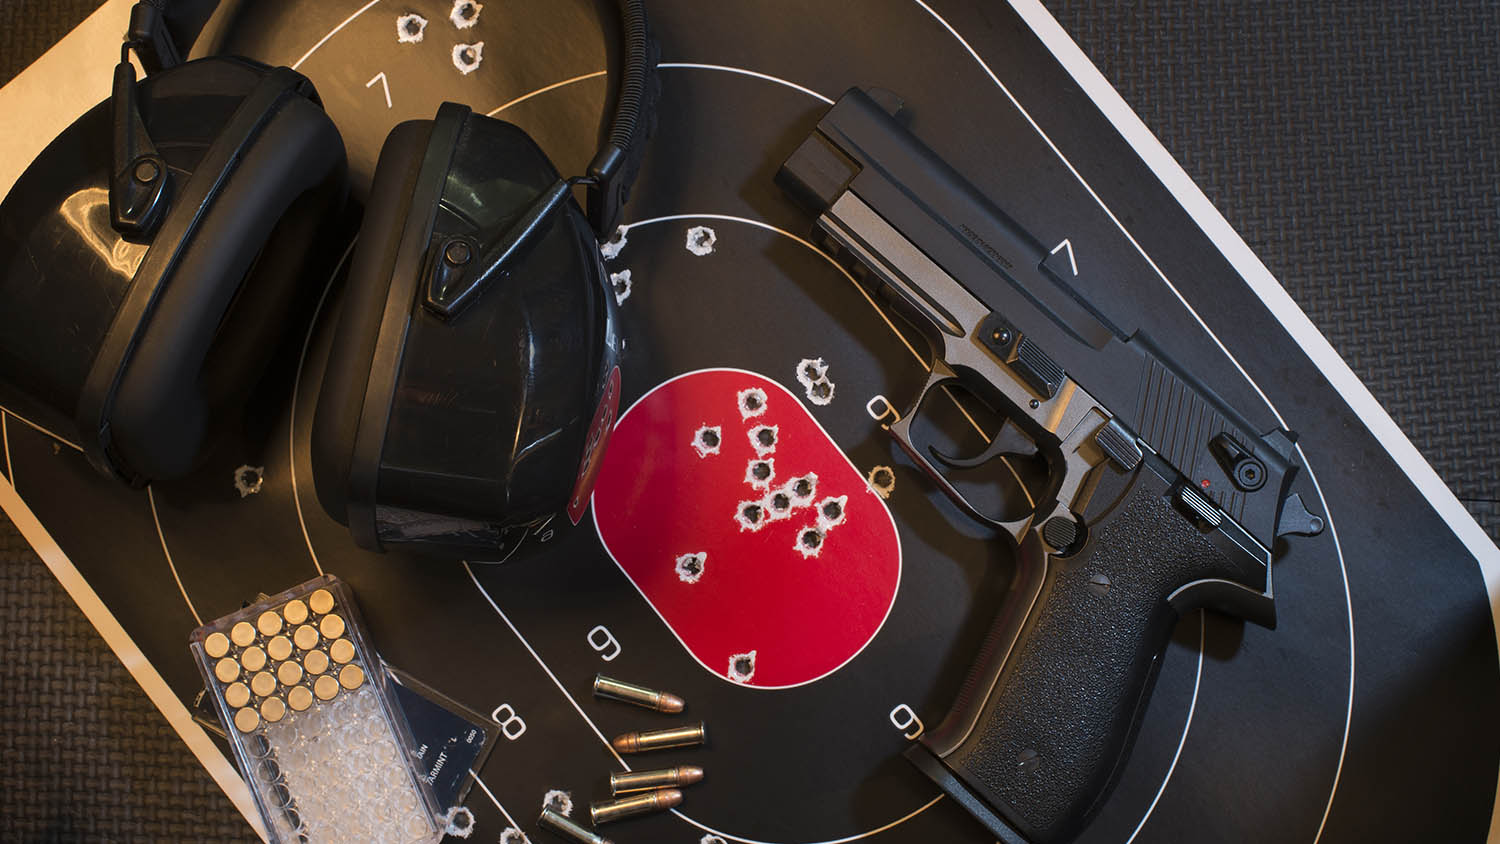 Train at the NRA Outdoors Defensive Handgun Academy